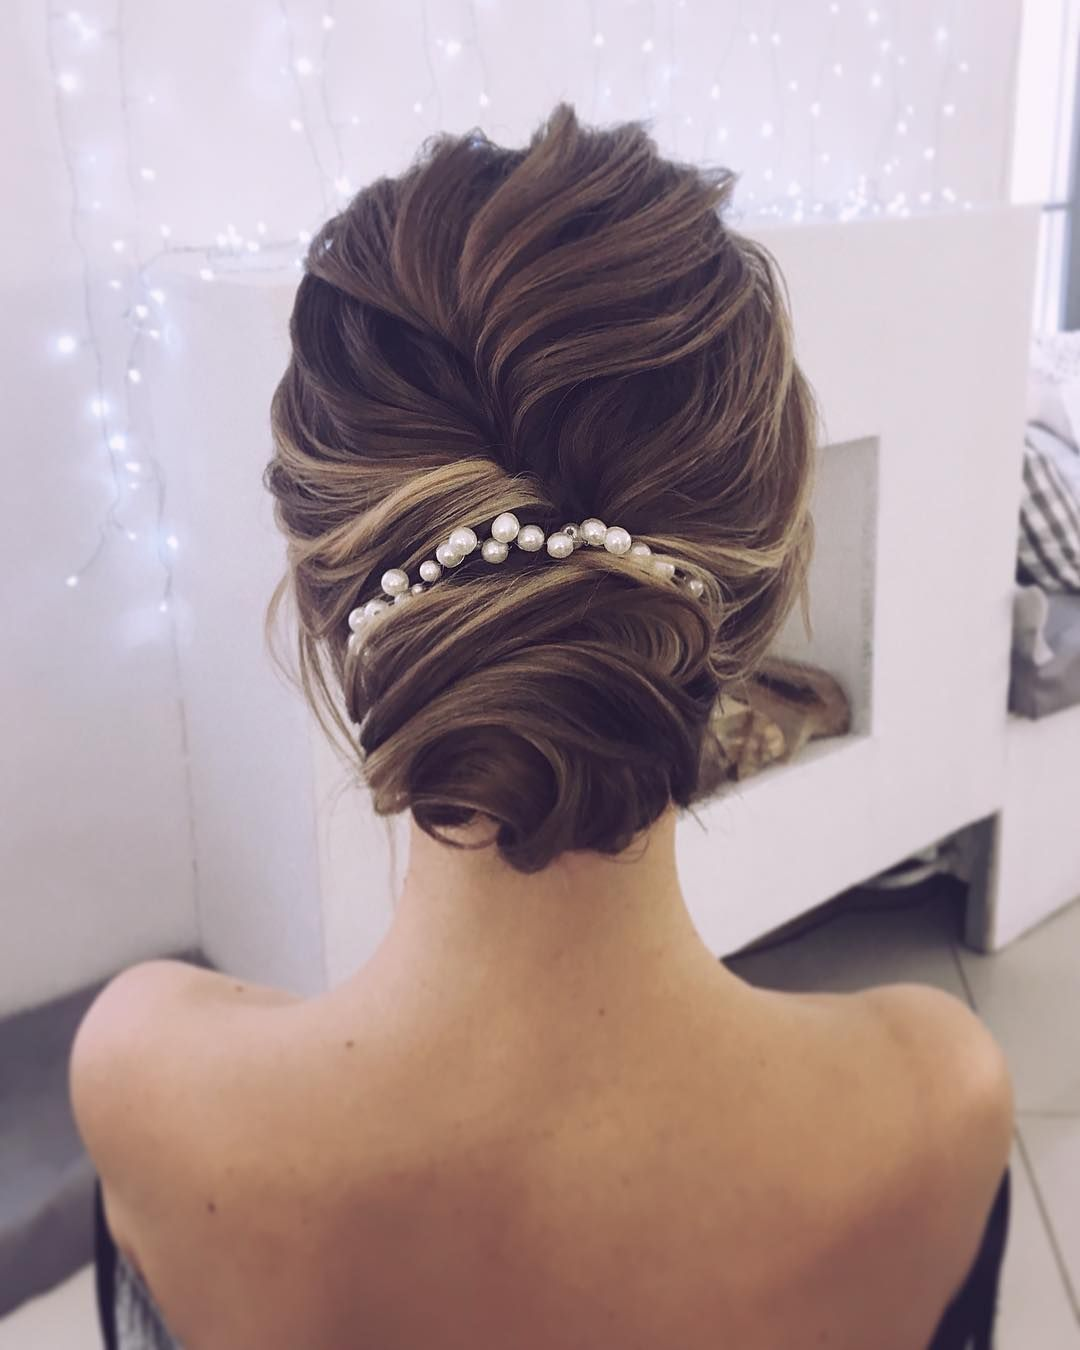 jaw dropping wedding updo hairstyle inspiration | unique